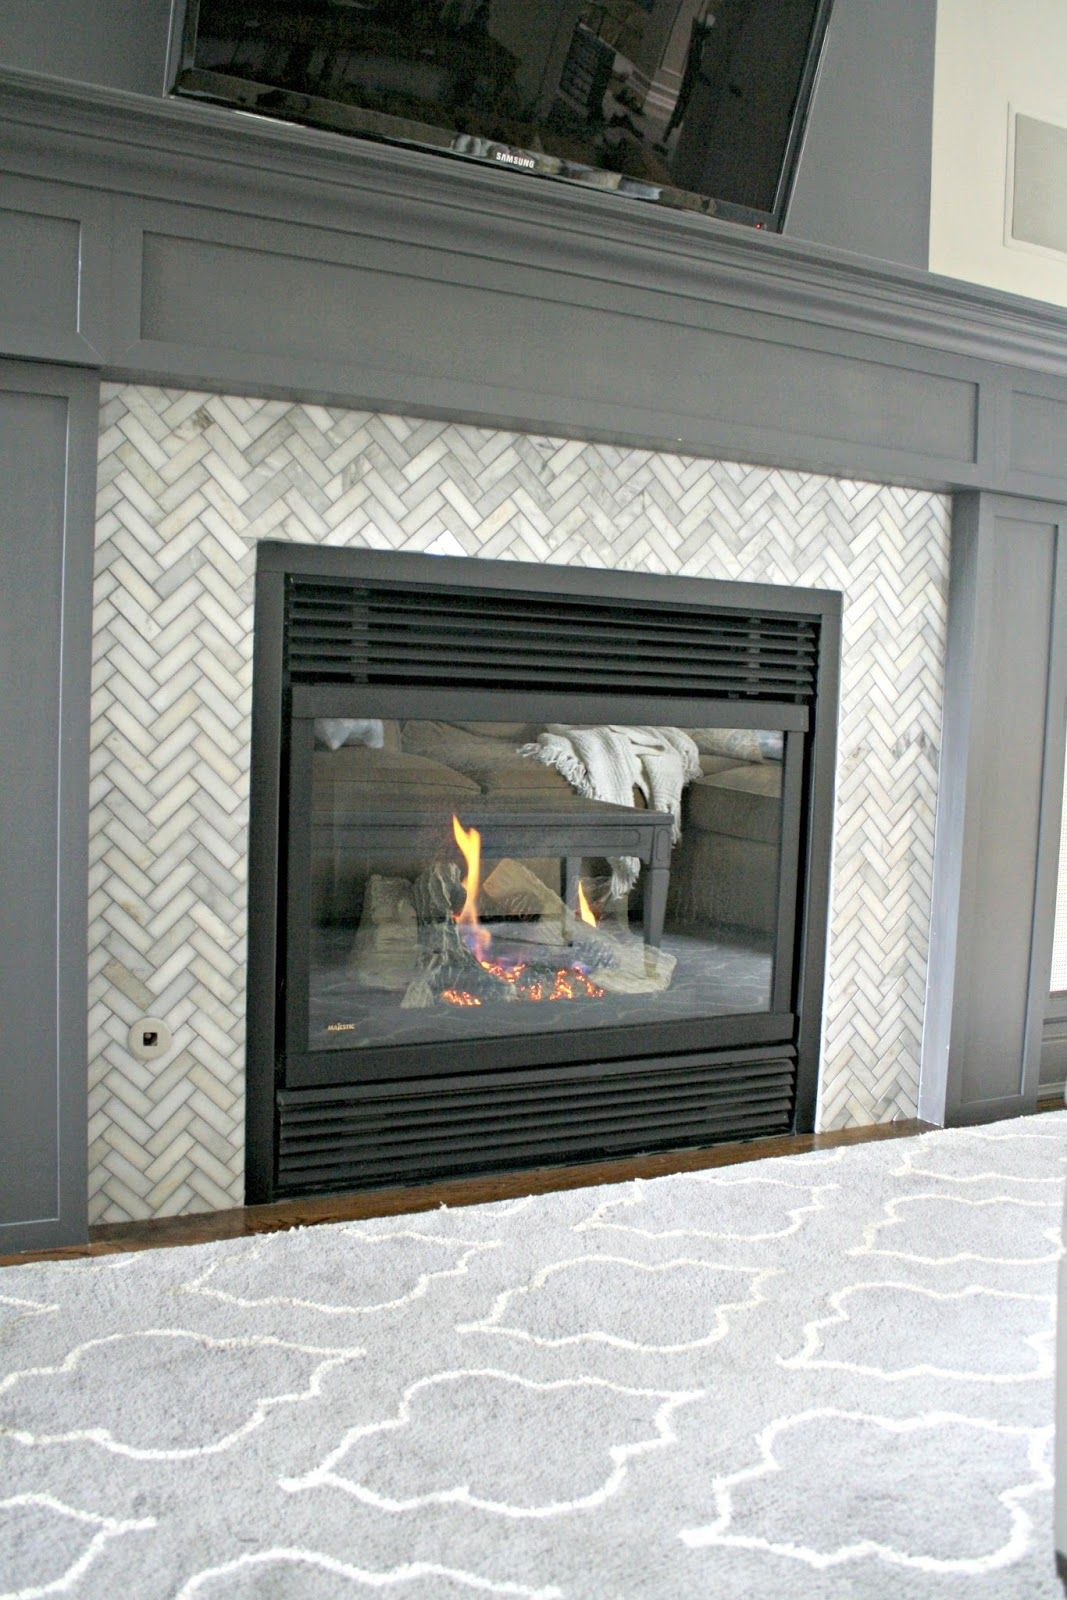 How We Hide The Tv Electronics Fireplace Glass Doors Tile